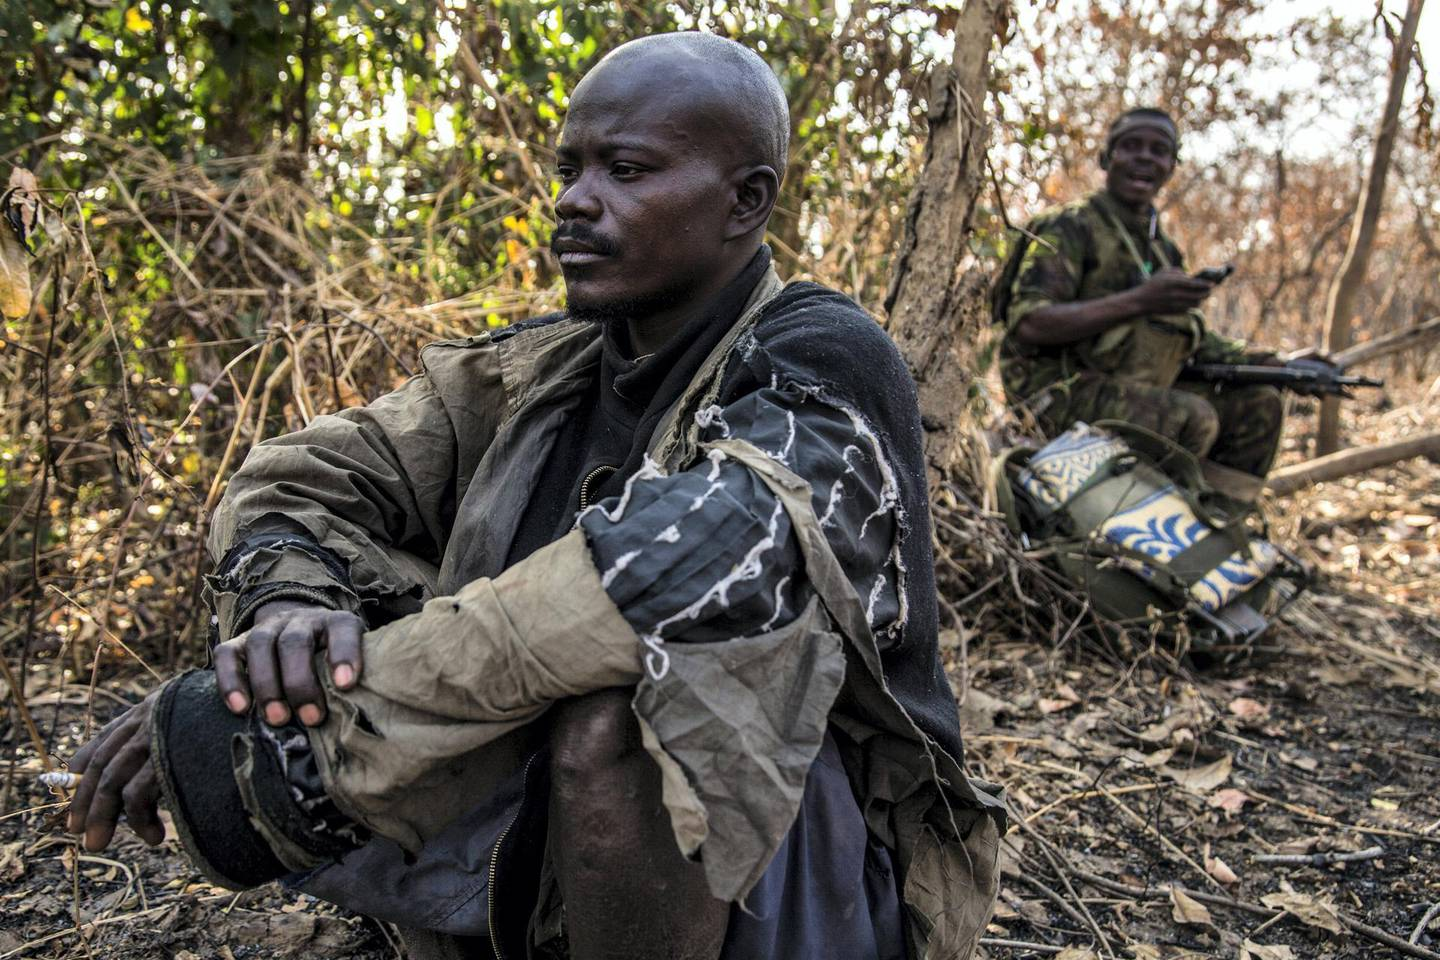 """A suspected poacher rests in the shade after being arrested, waiting to be taken to a holding cell. Constant - a father-of-one in his late 30s whose wife is pregnant with their second child - said hunting was the only way he could make ends meet for his family: """"There are no opportunities. I do this to survive."""" People living around the Chinko reserve are among the most marginalised and impoverished communities in the world."""